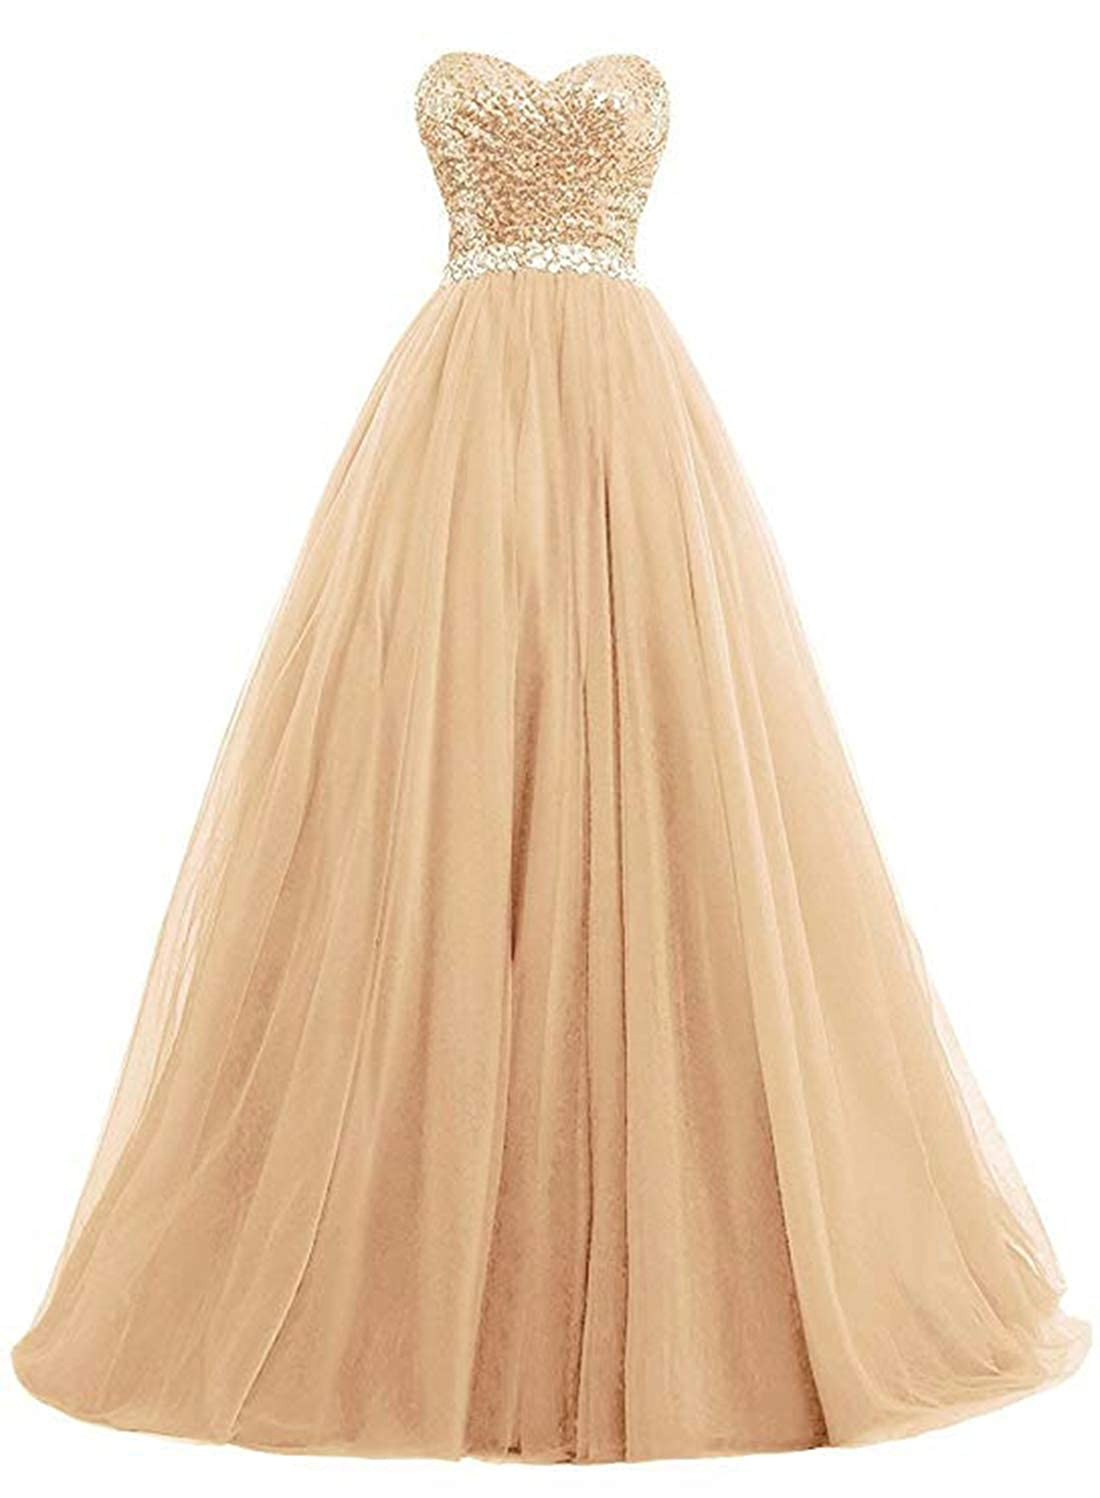 Champagne olise bridal Sexy Sweetheart Women's A Line Long Prom Dresses Sequin Party Formal Dresses Ball Gowns